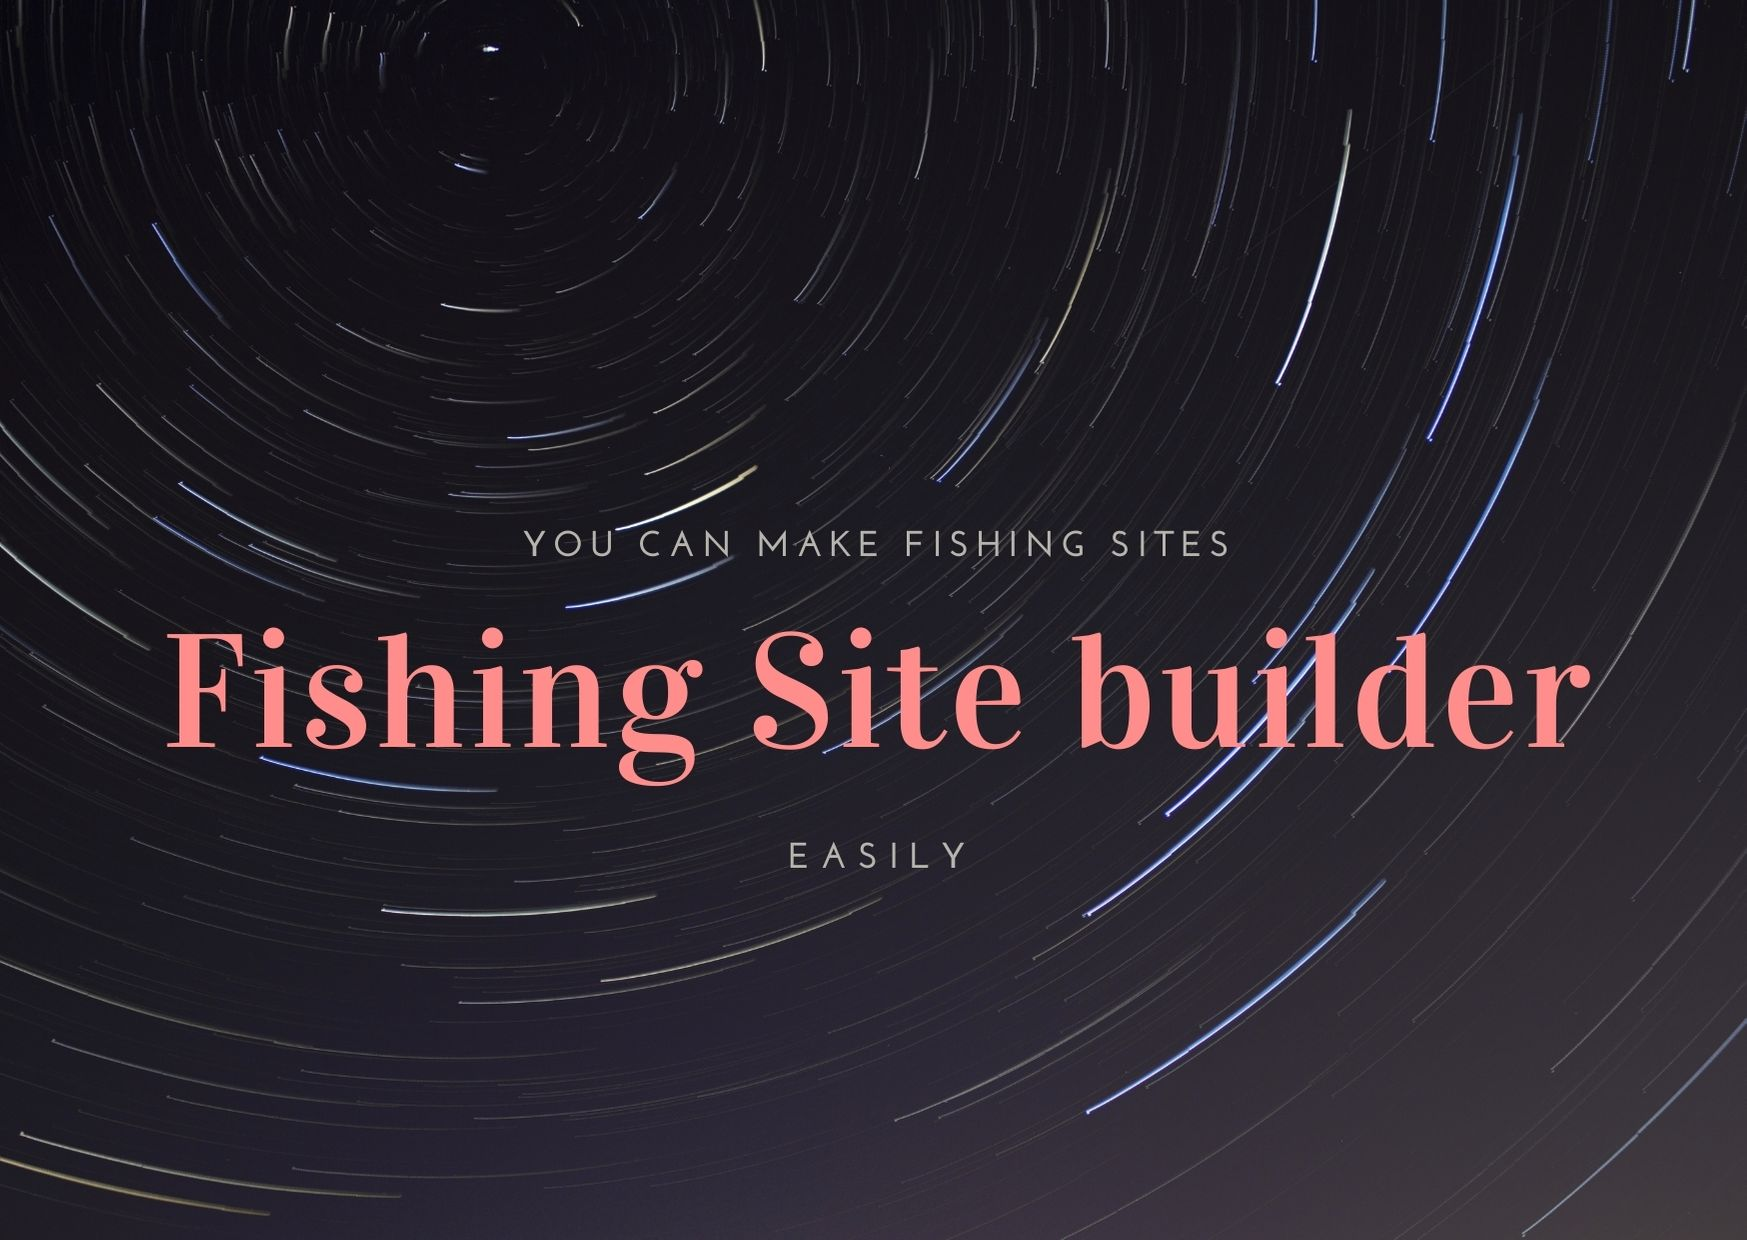 Fishing Video Site Builder -Introducing Fishing video siter